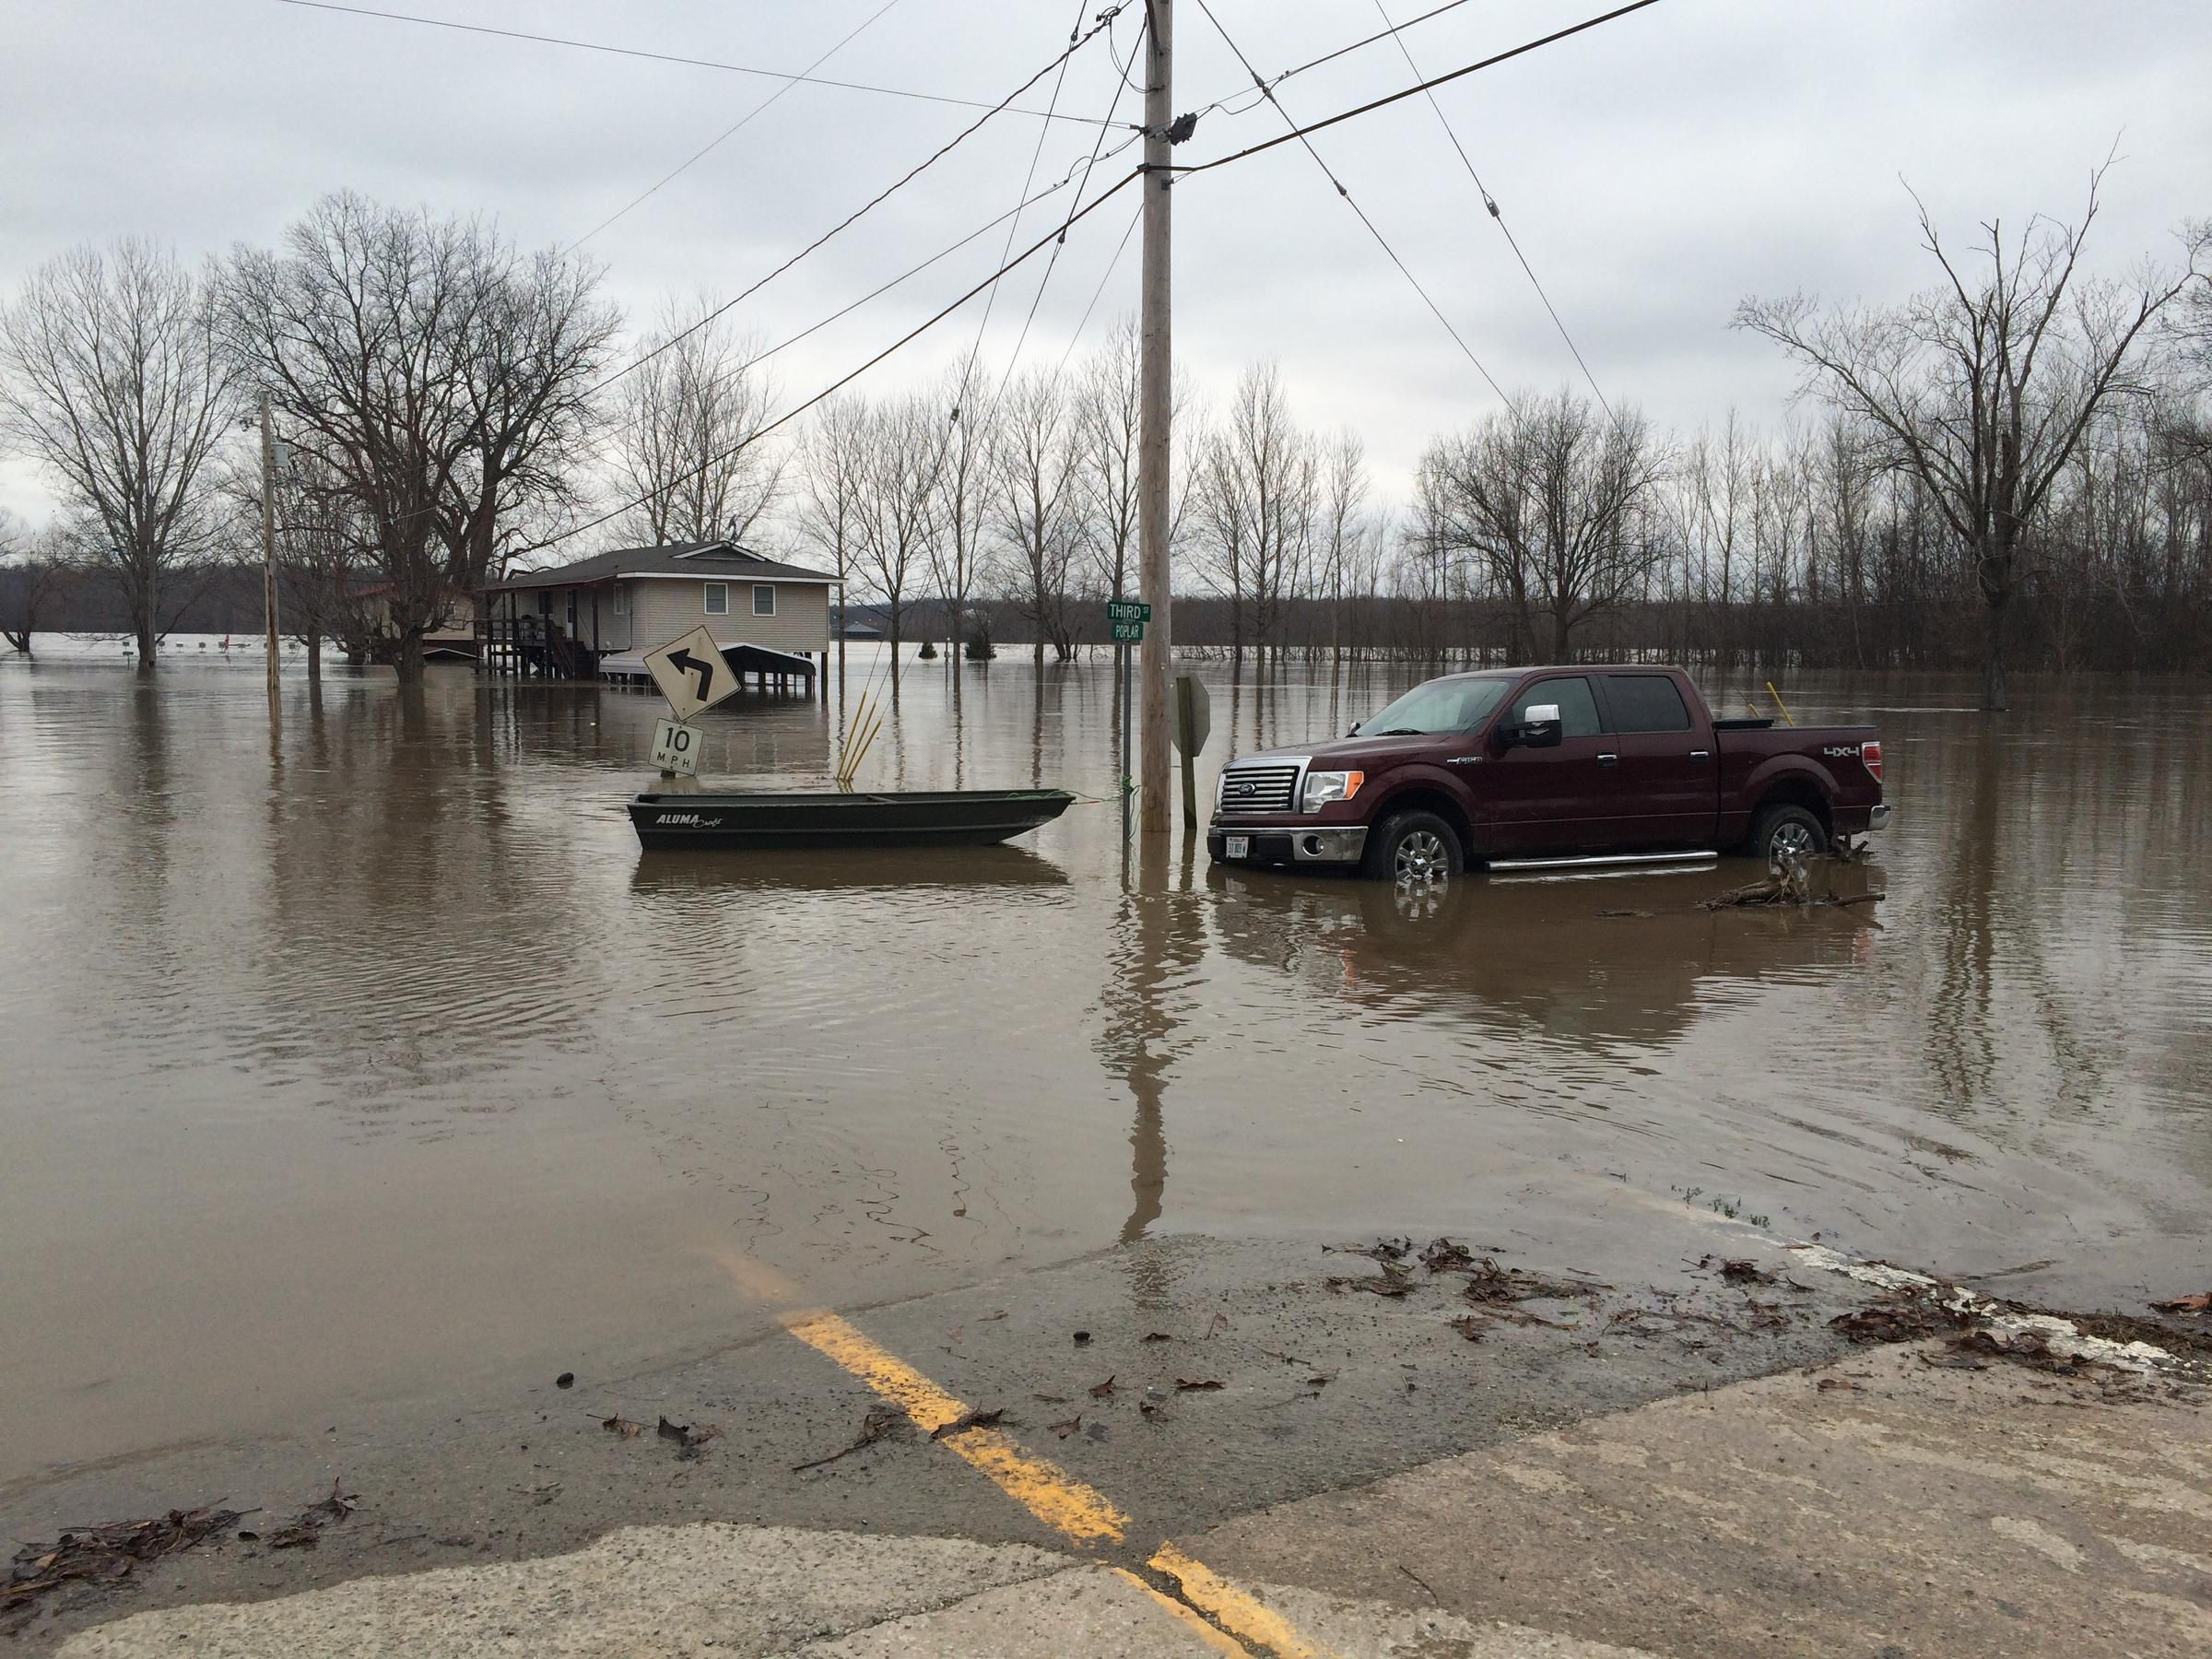 Illinois alexander county thebes - Water Levels Were So High That Even The House On Stilts Flooded In Thebes Illlinois On Wednesday Dec 30 2015